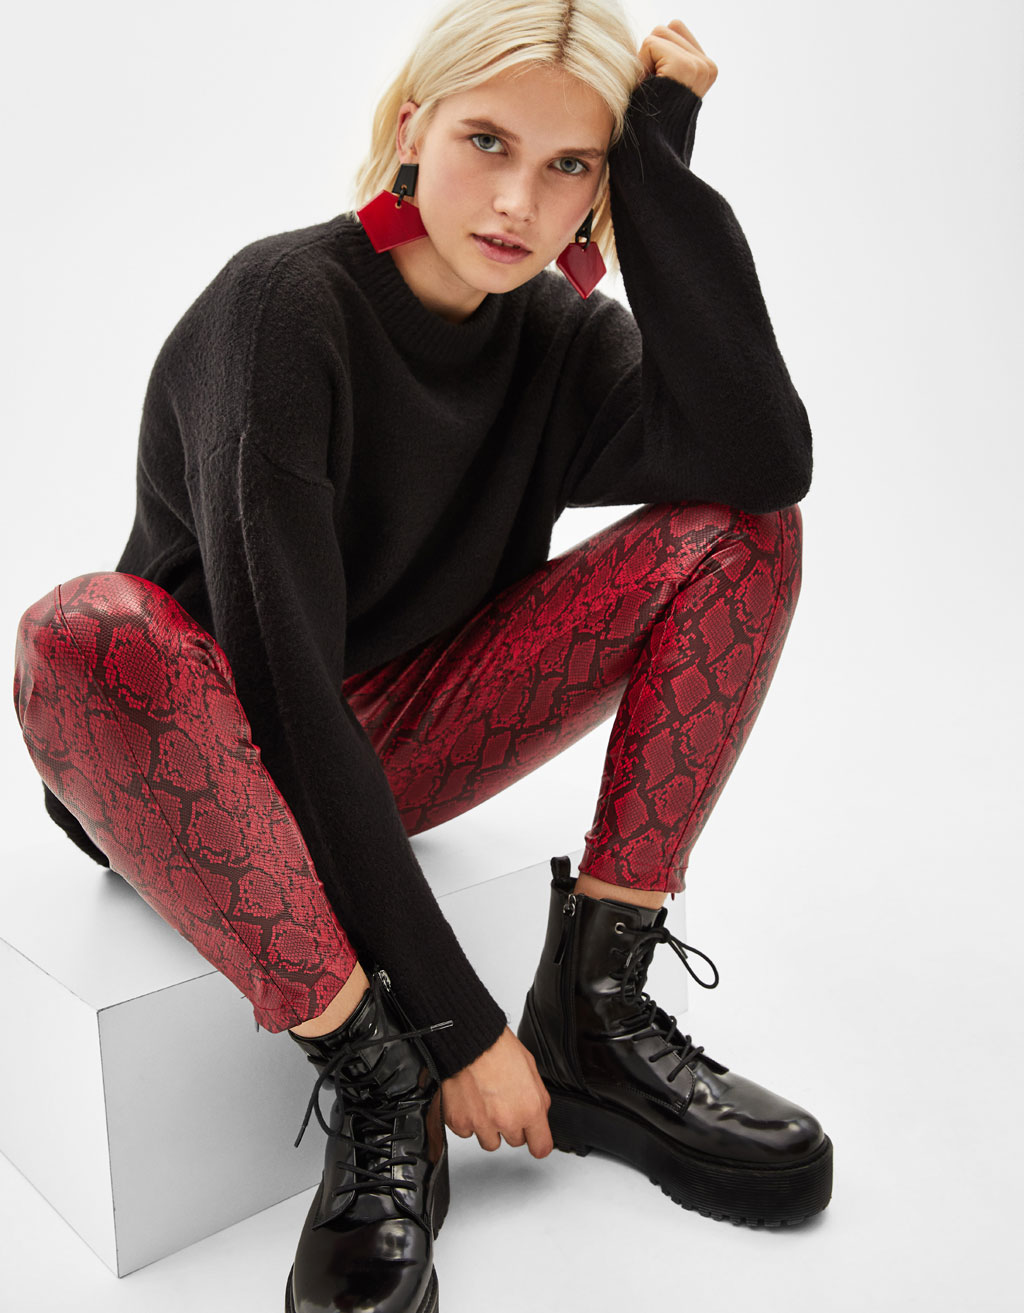 c1ea2094eae6d Snakeskin print leggings - Micro Site Influencer - Bershka Bosnia and ...